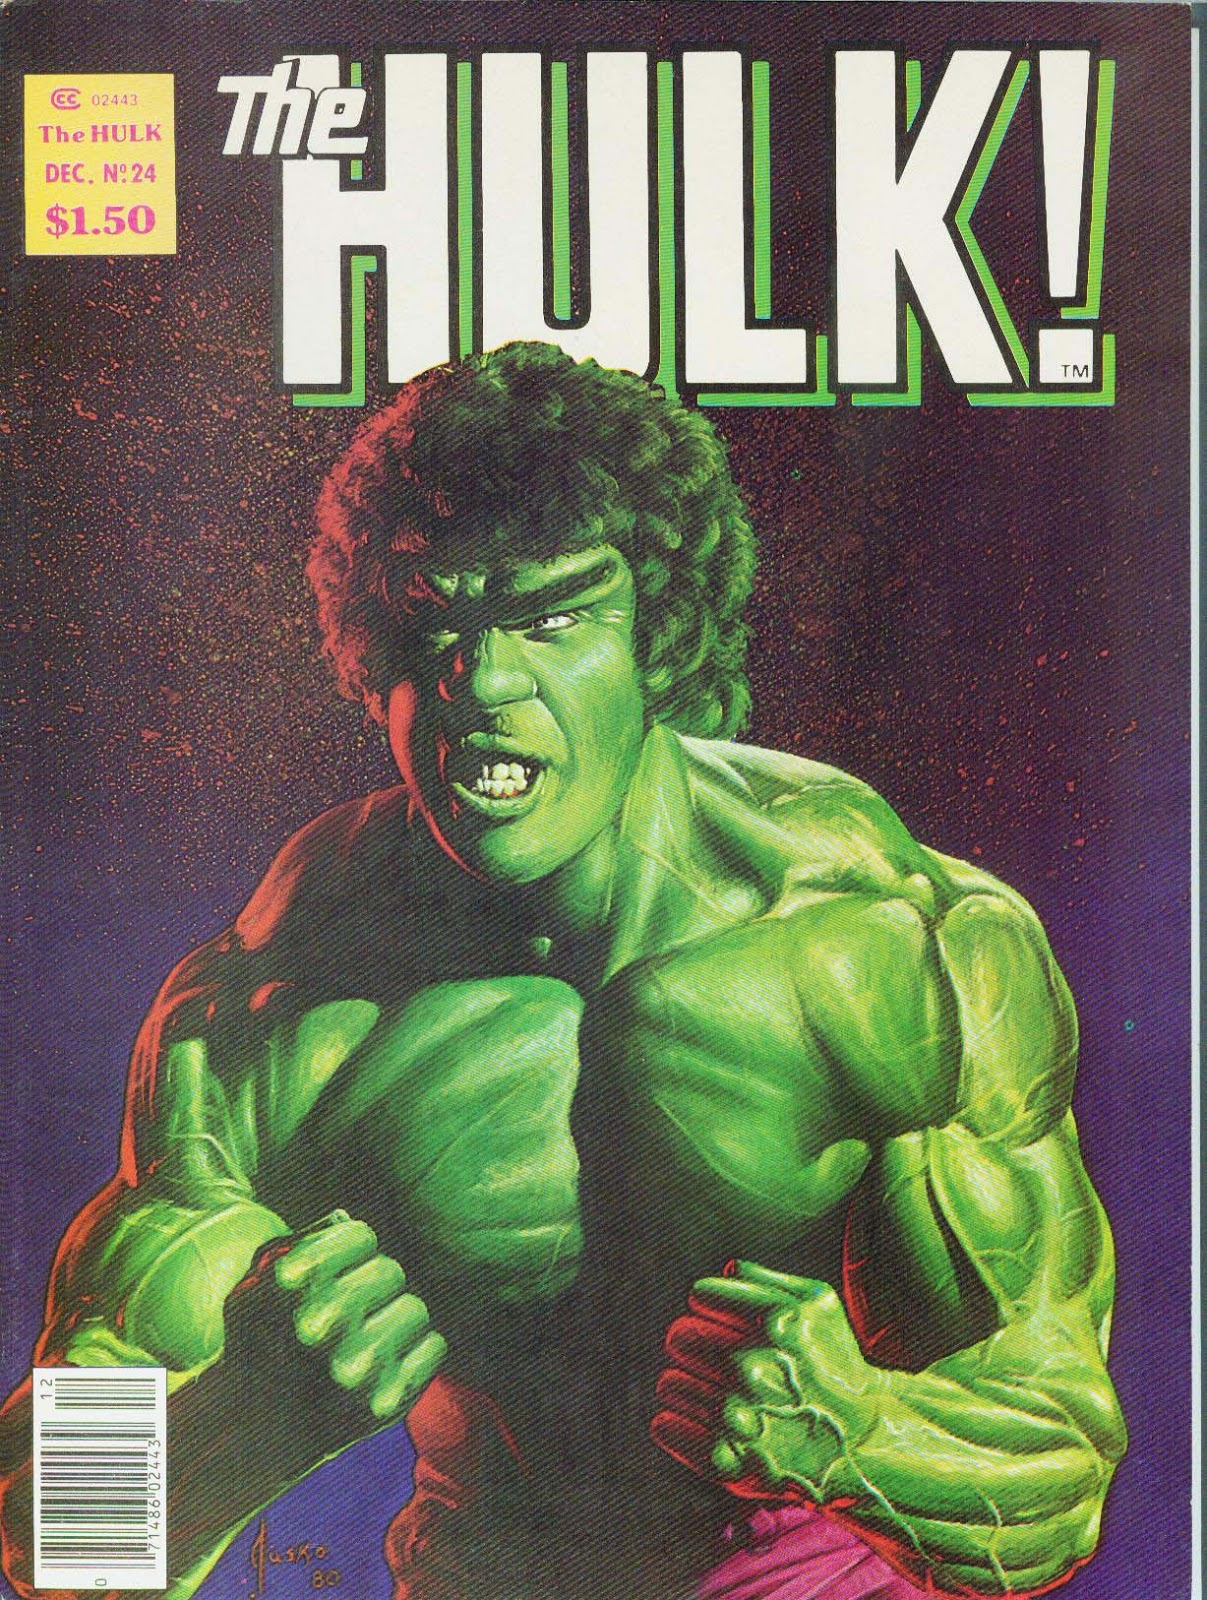 It's just a picture of Decisive The Hulk Picture